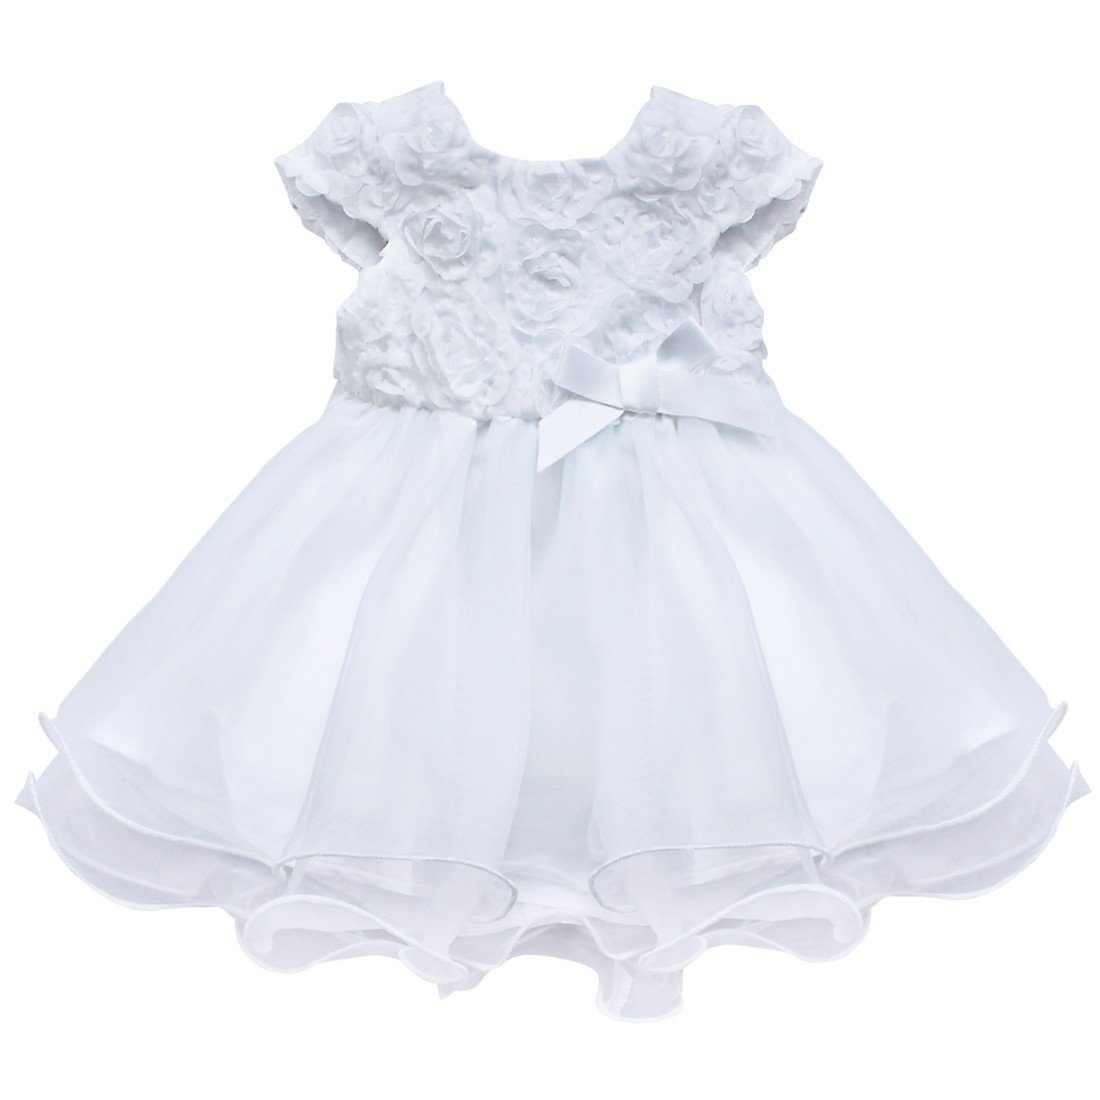 CHICTRY Baby Girls 3D Rose Flower Baptism Christening Party Princess Dress White 12-18 Months